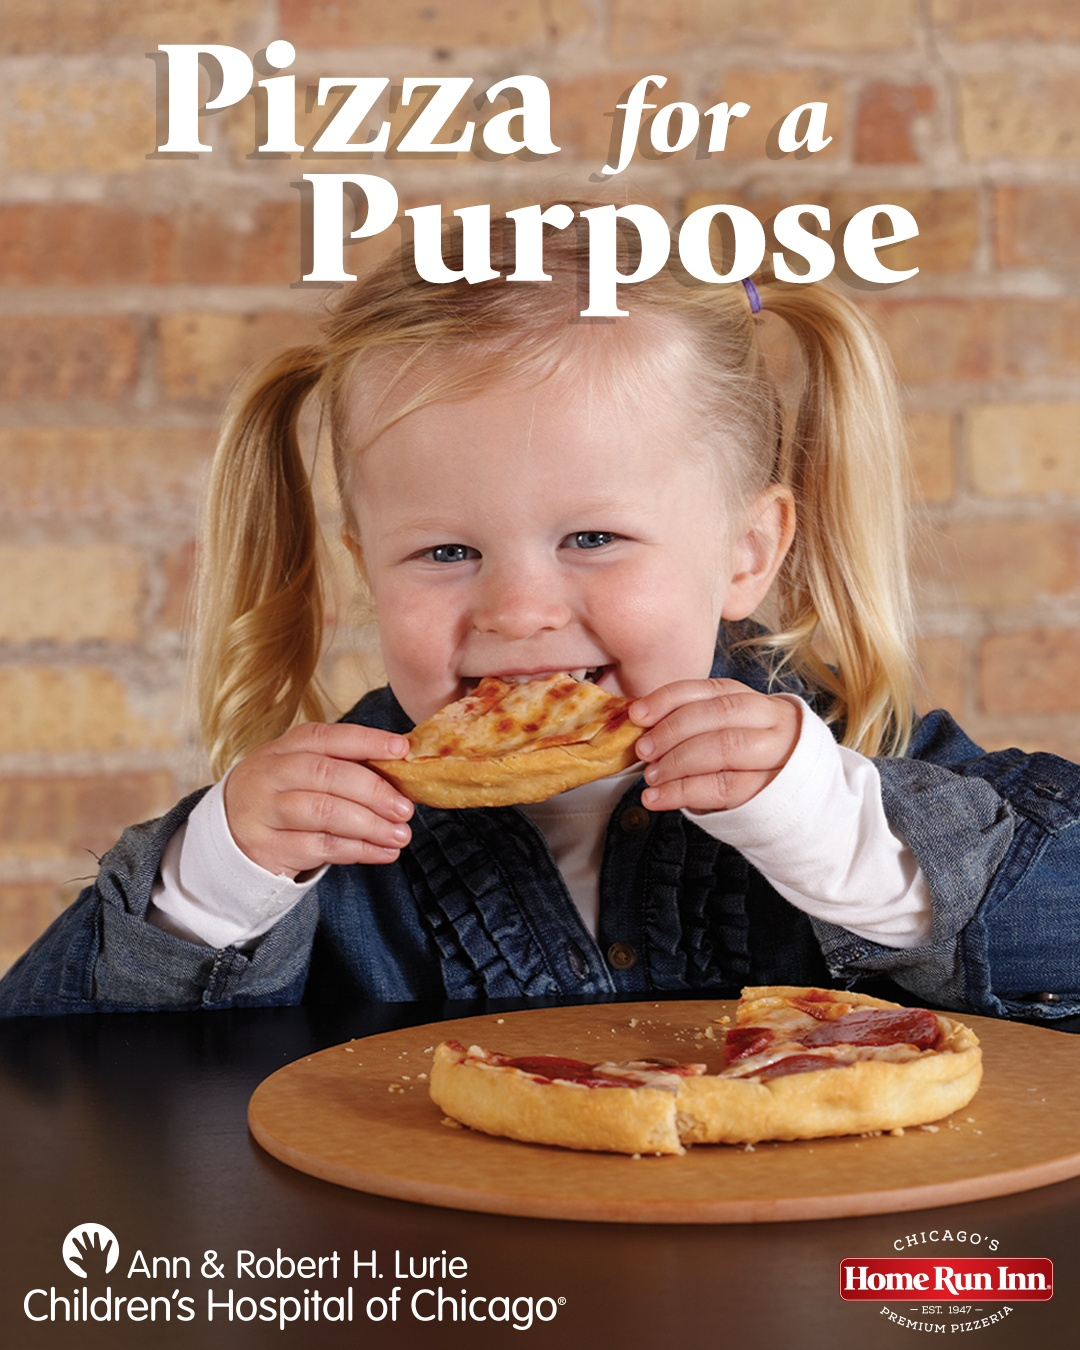 Give back this holiday season with Home Run Inn Pizza - Featured Image